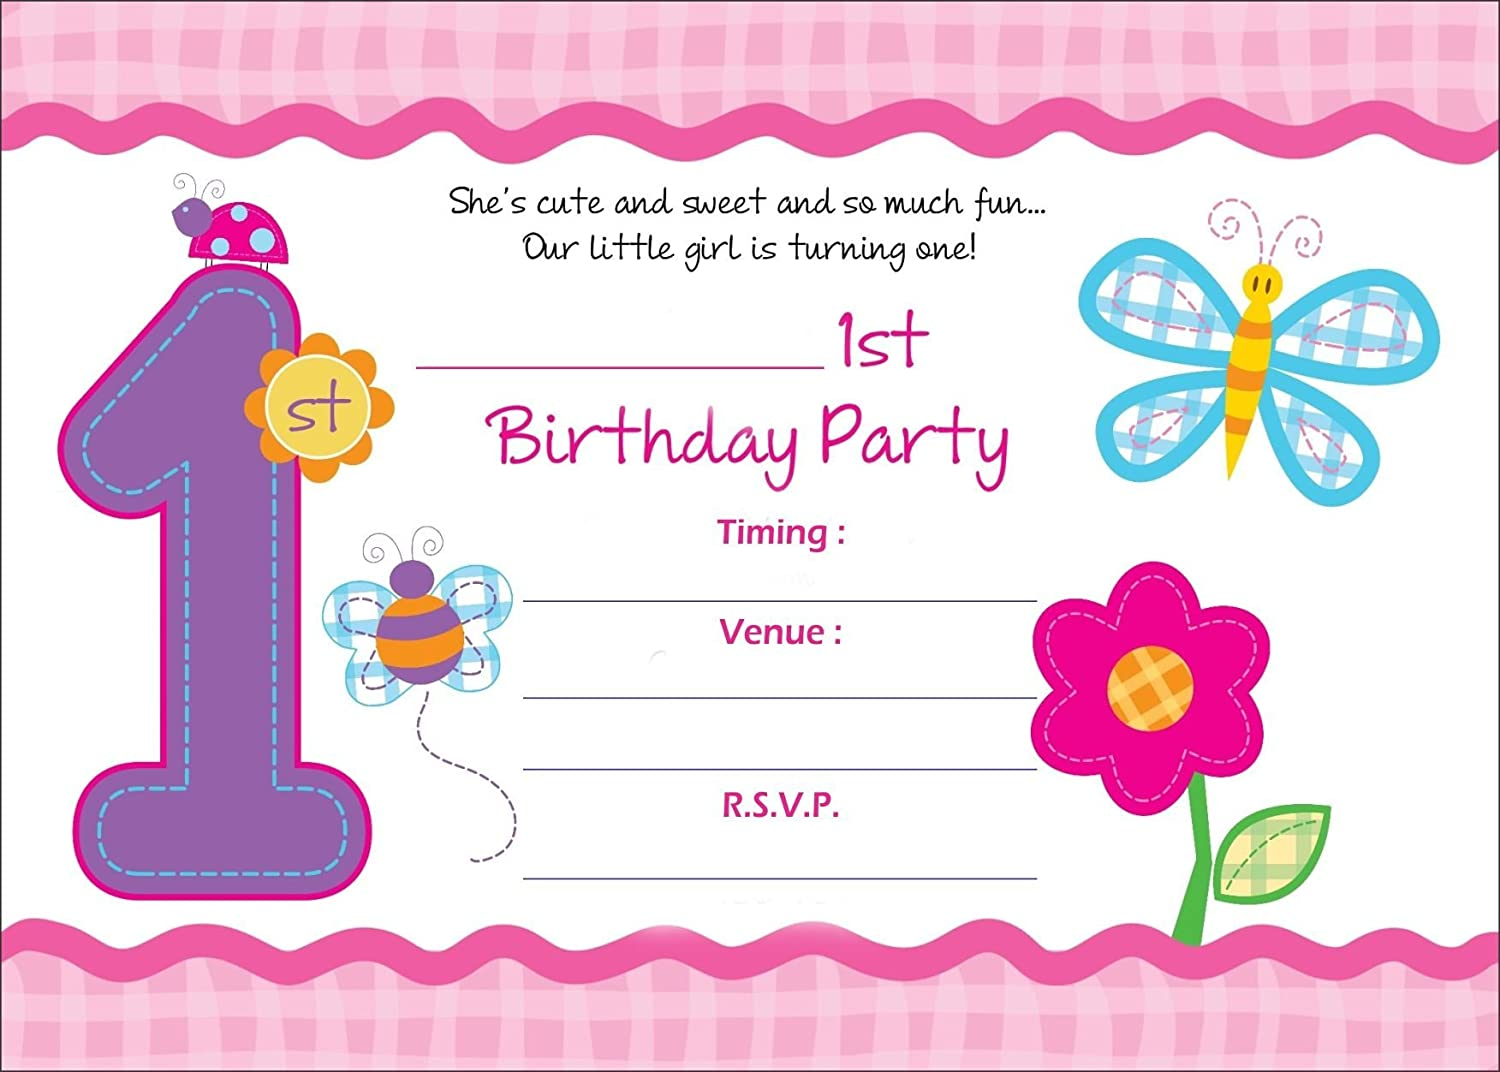 Birthday Metallic Card Invitations with Envelopes - Kids Birthday Party  Invitations for Girls (3 Count) BPC-3